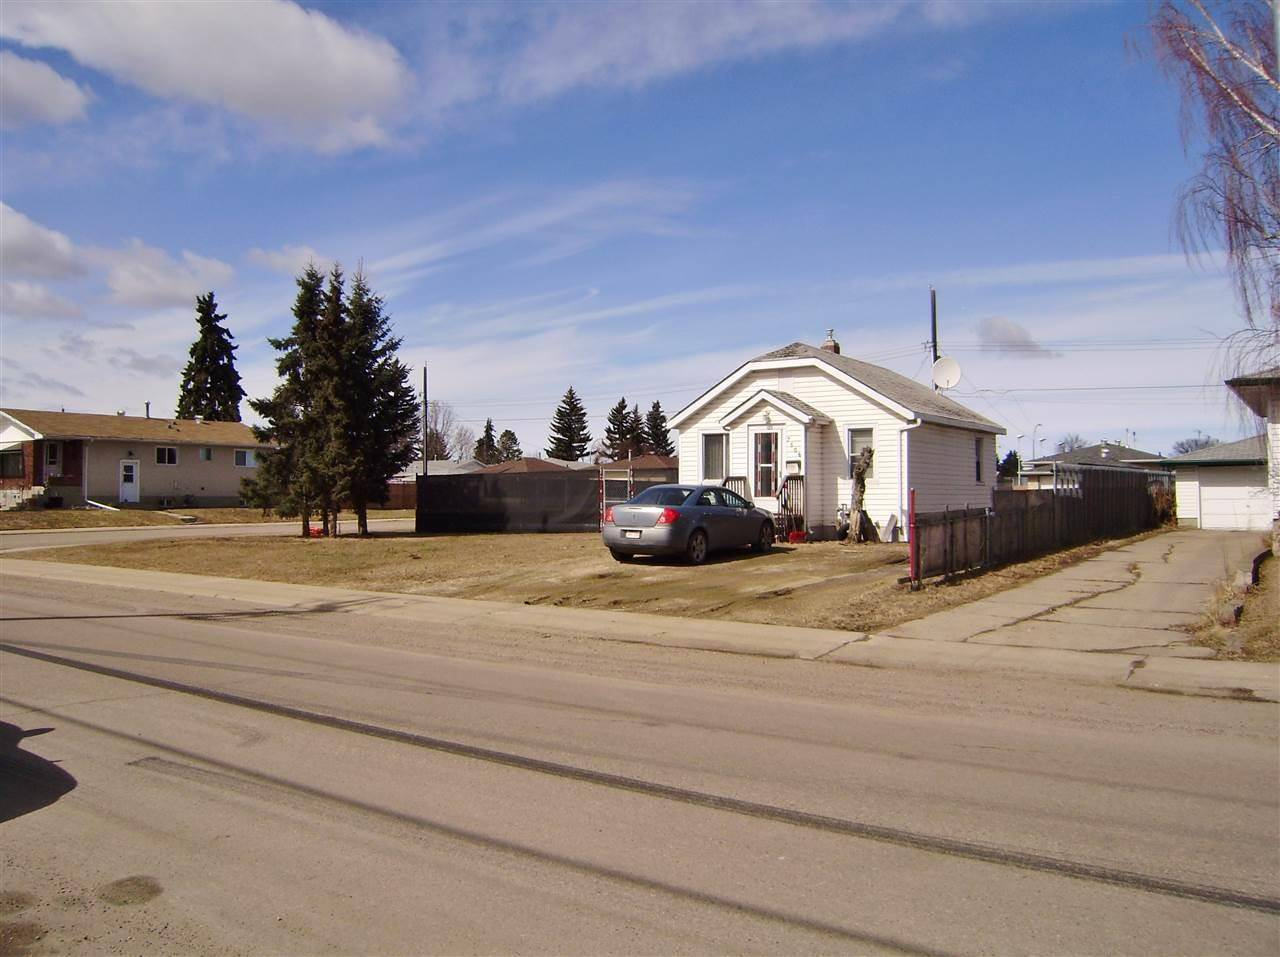 Home for sale at 7508 128 Ave Nw Edmonton Alberta - MLS: E4194367